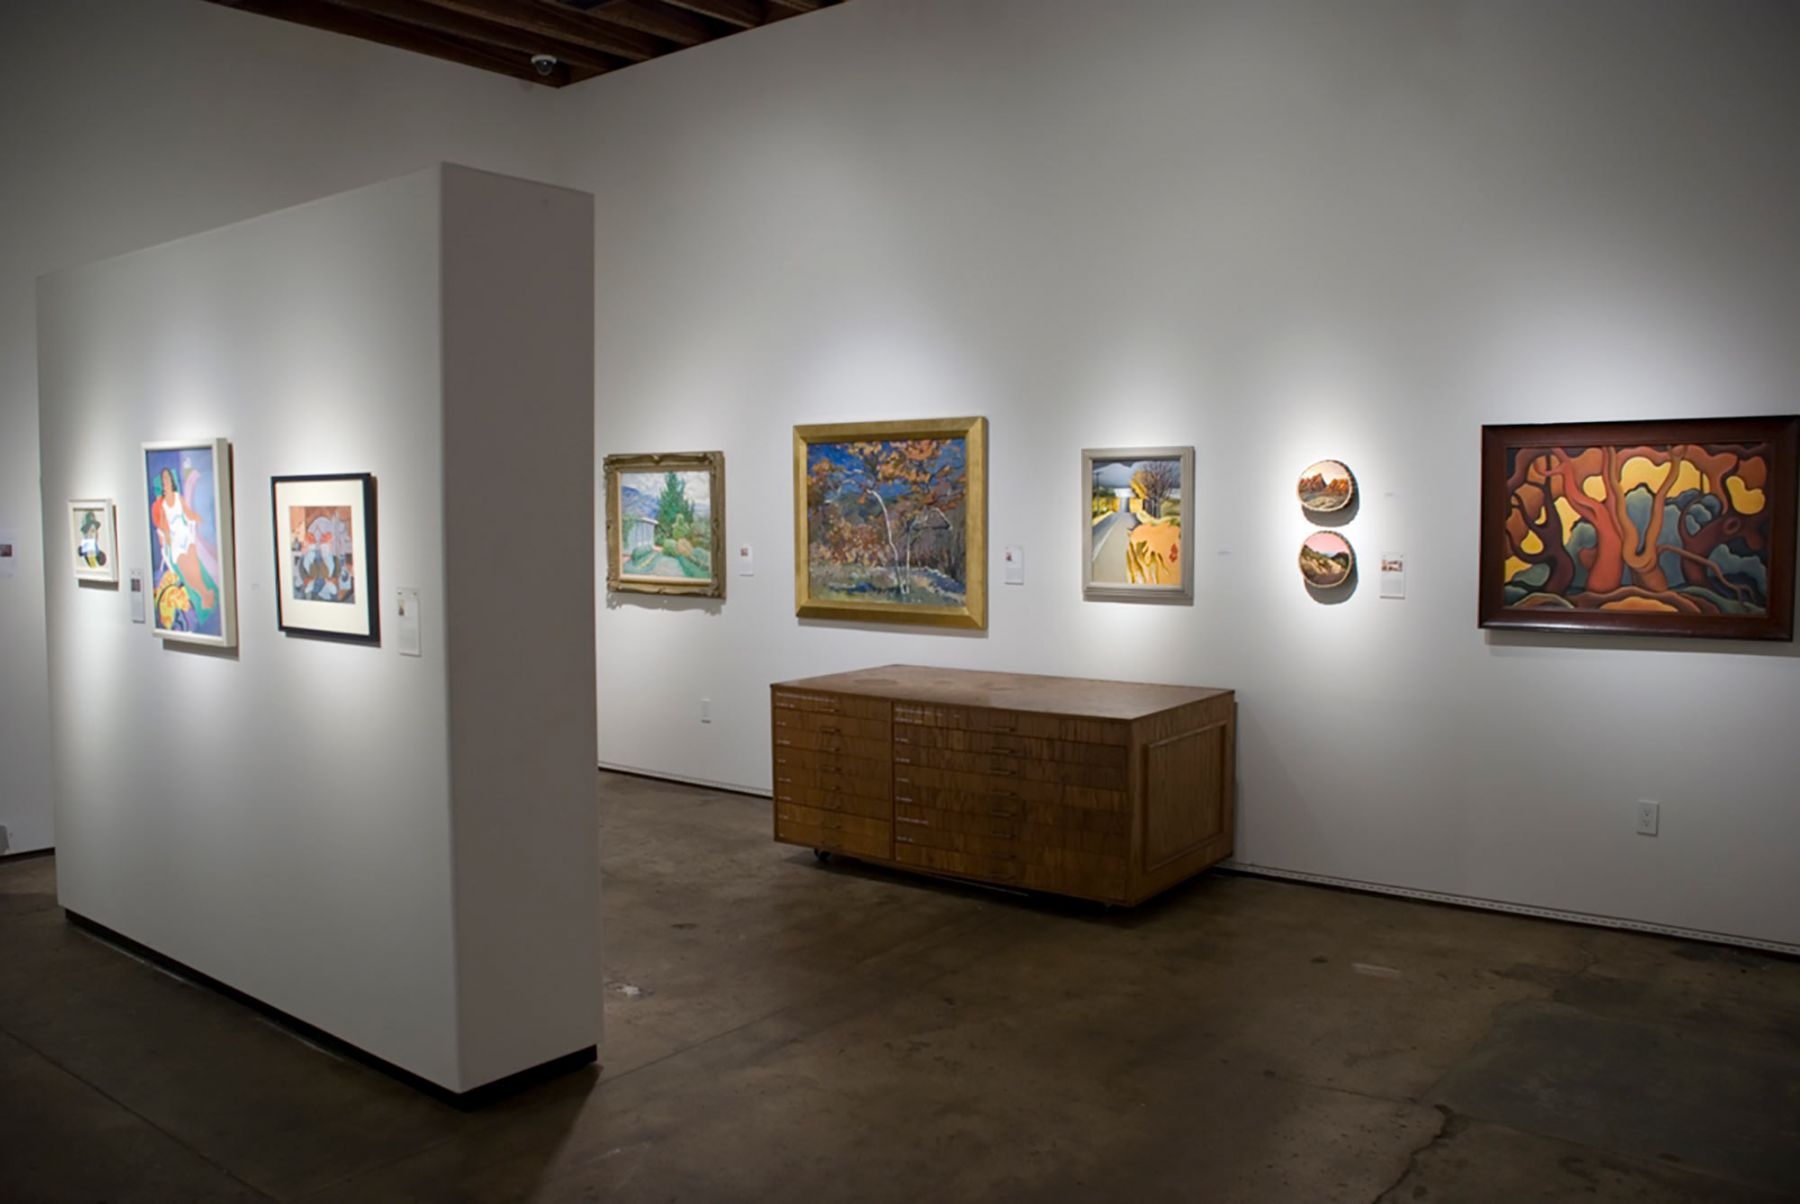 The Declarations of Independents: An Exhibition of Strong Women Modernists installation